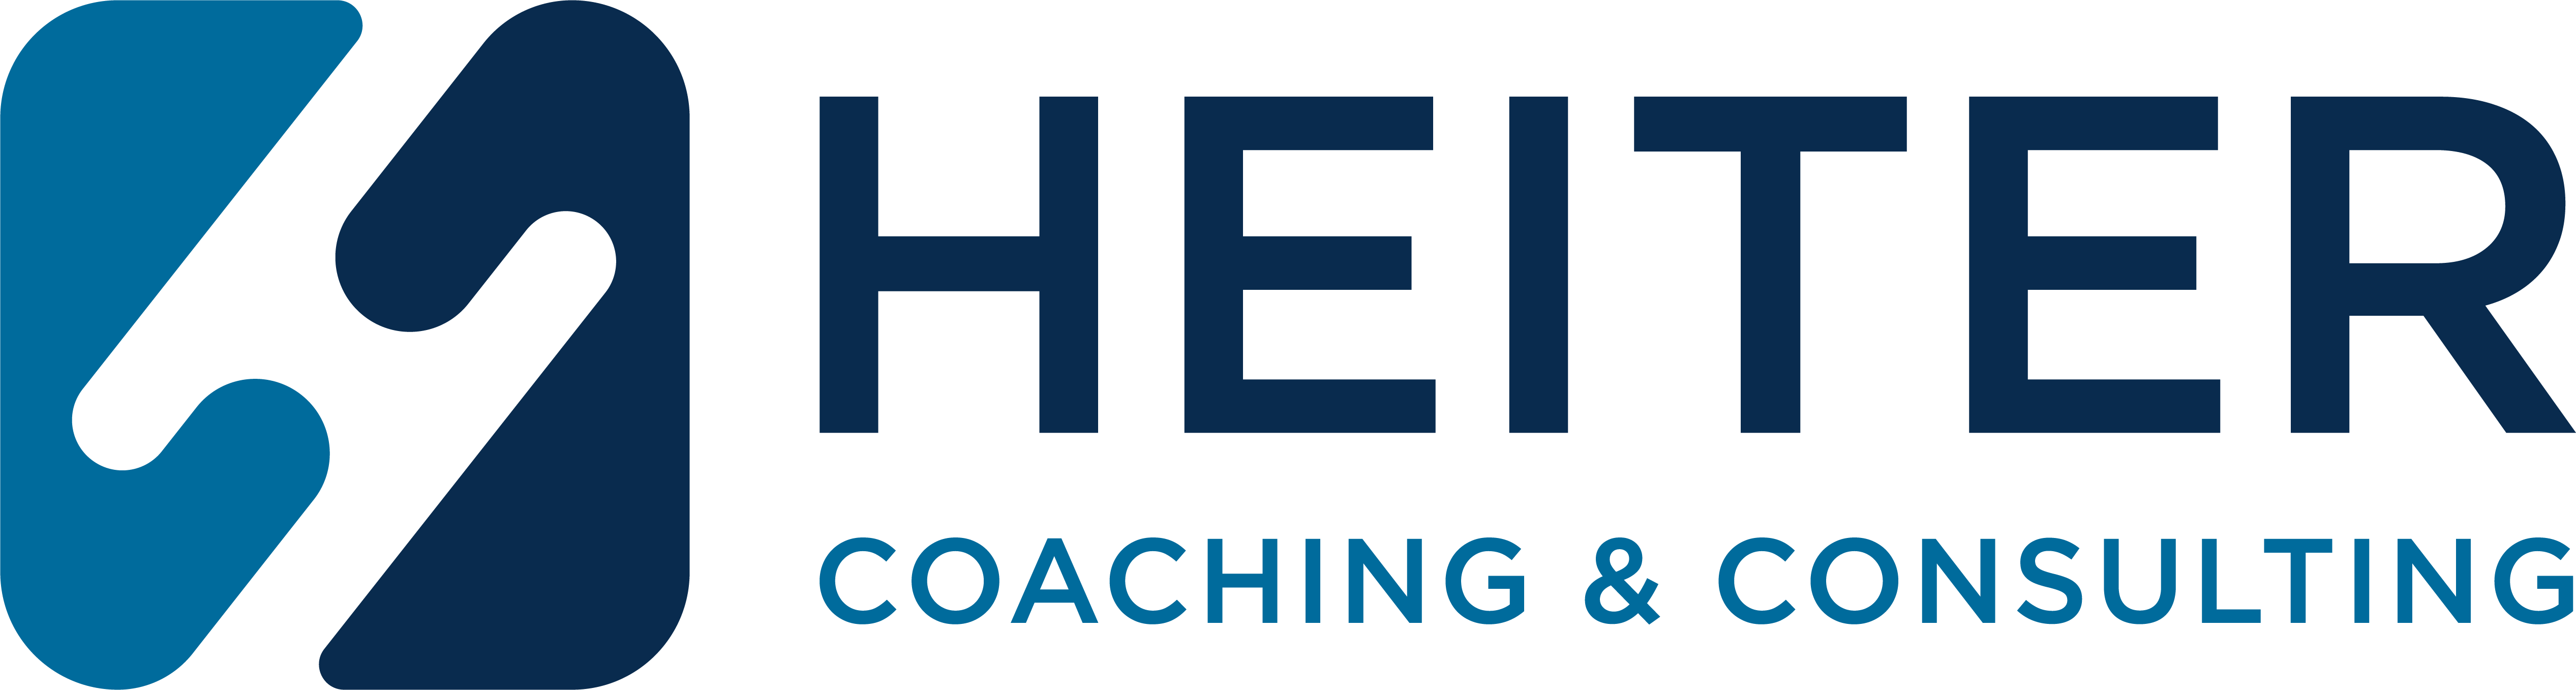 HEITER COACHING & CONSULTING GmbH